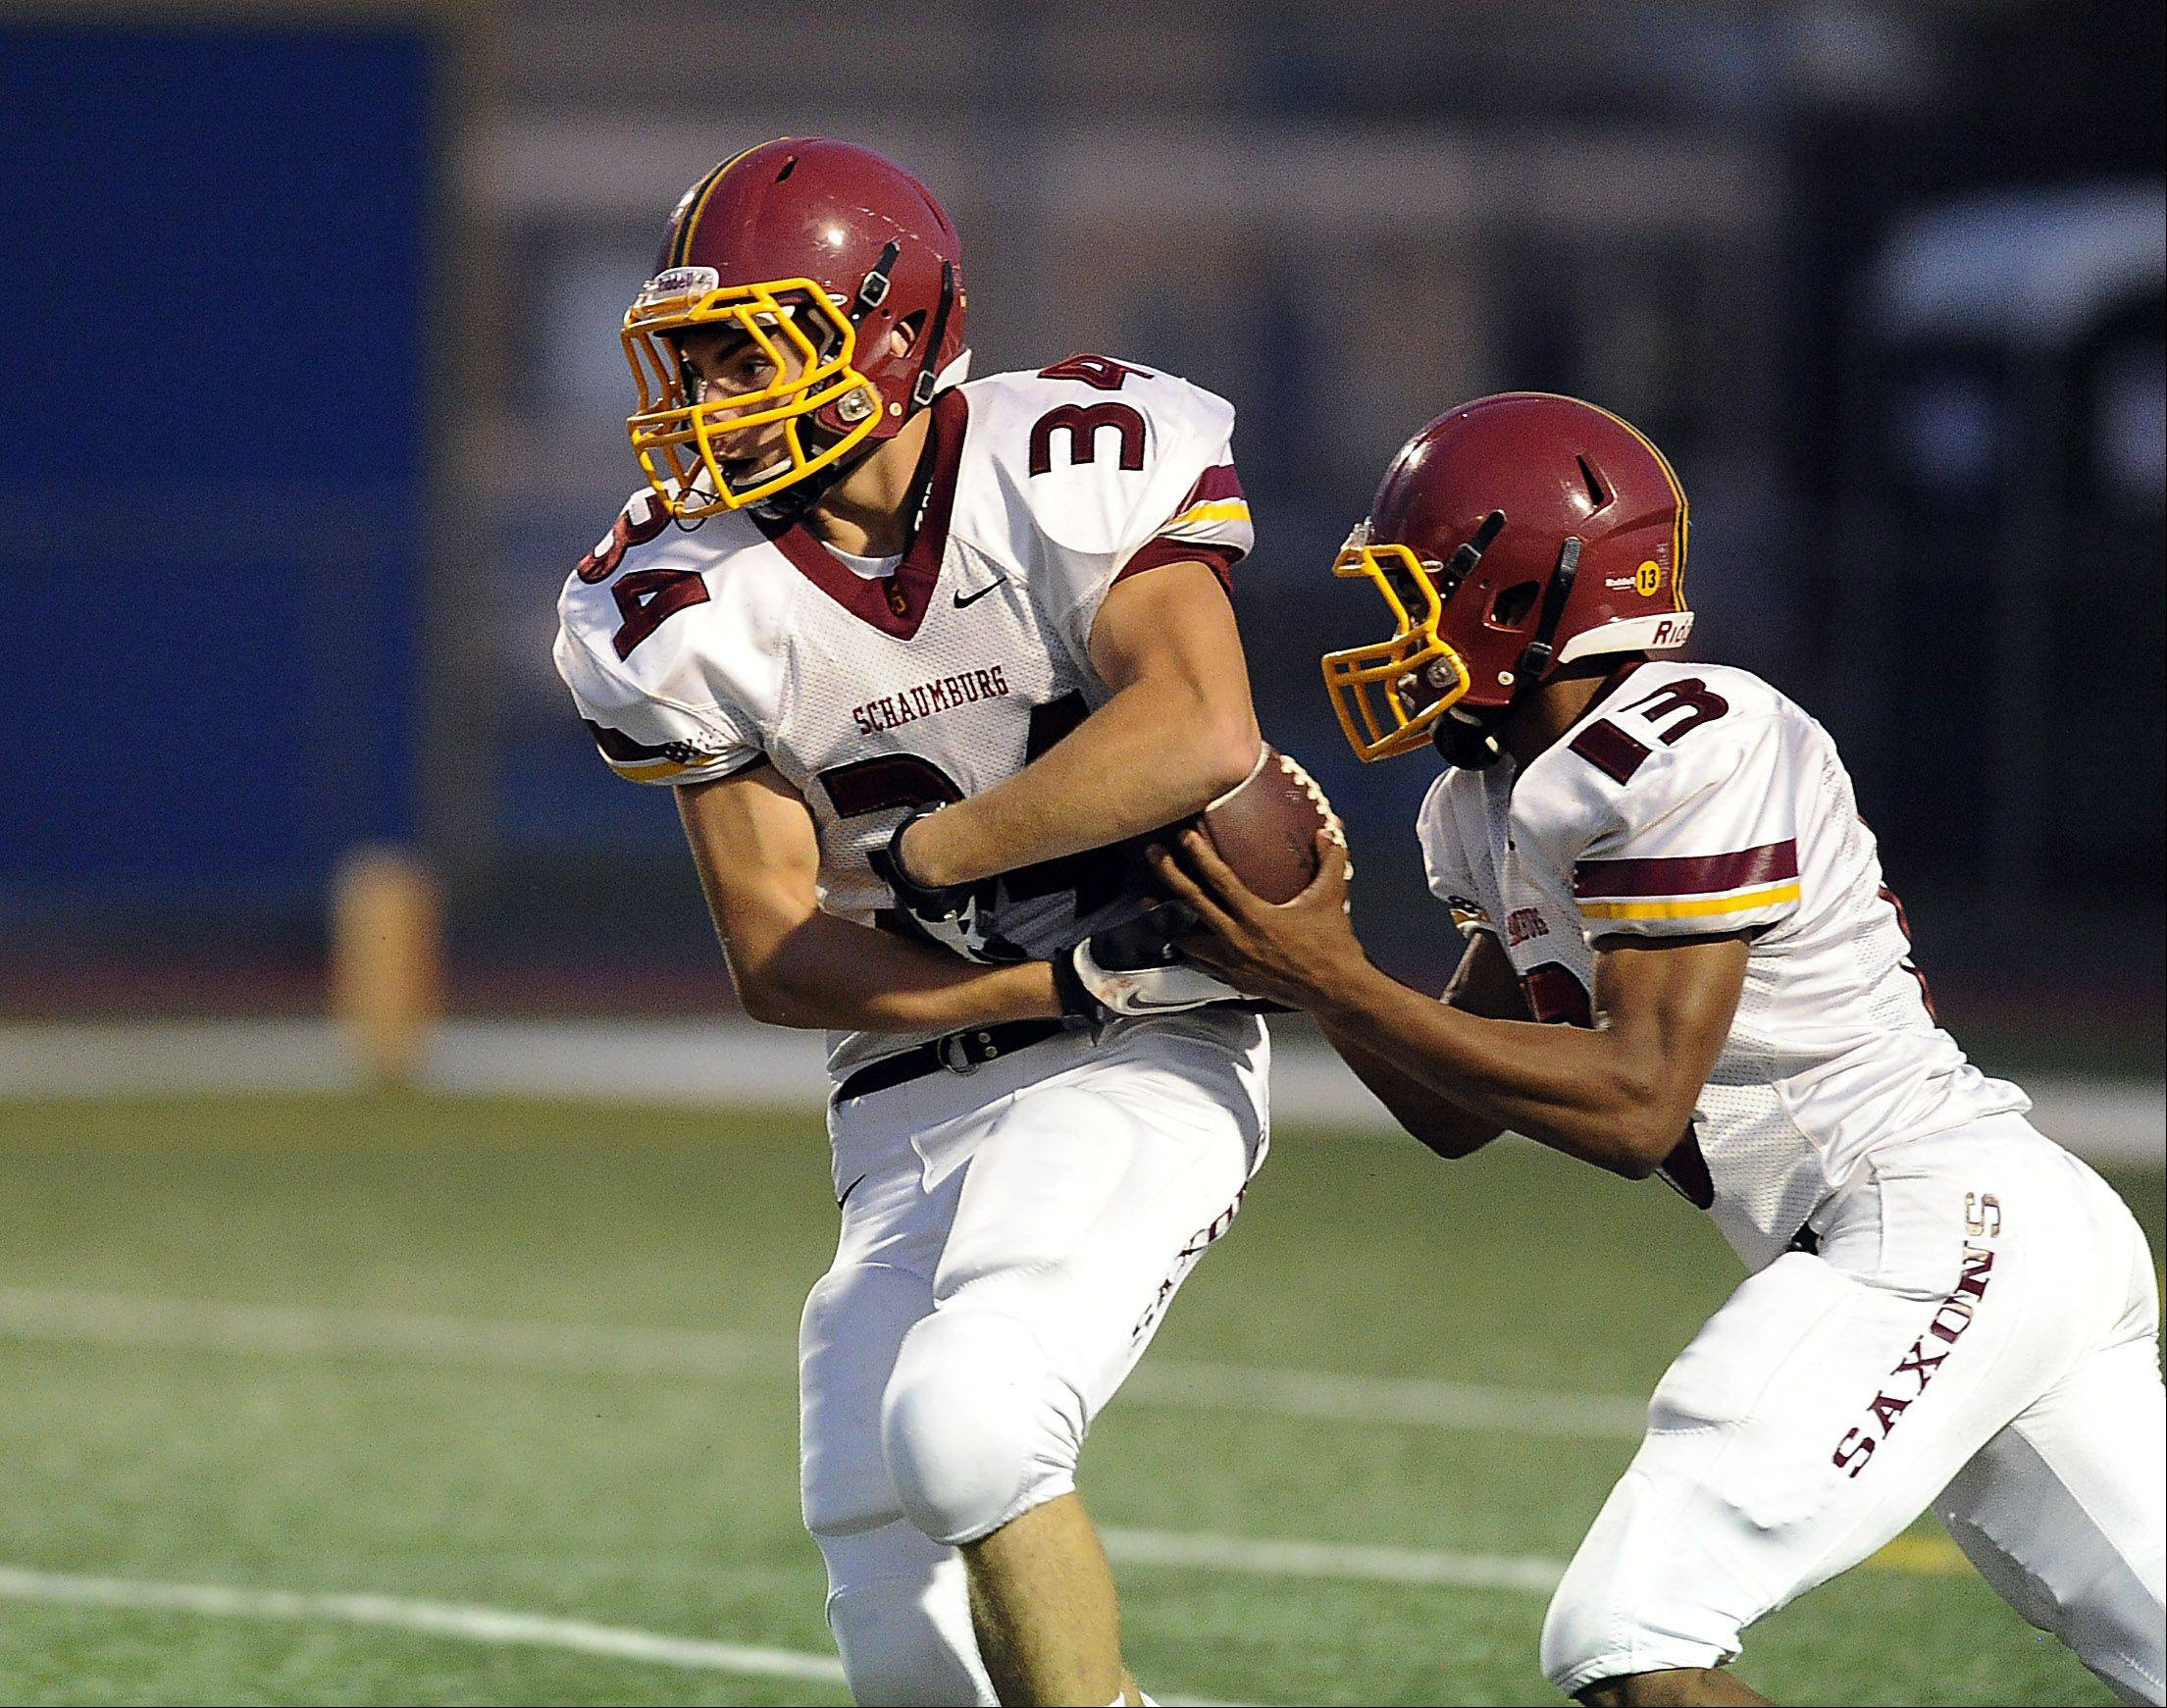 Schaumburg's quarterback Stacey Smith Jr. fakes a handoff to Michael Jones and runs back for a touchdown.